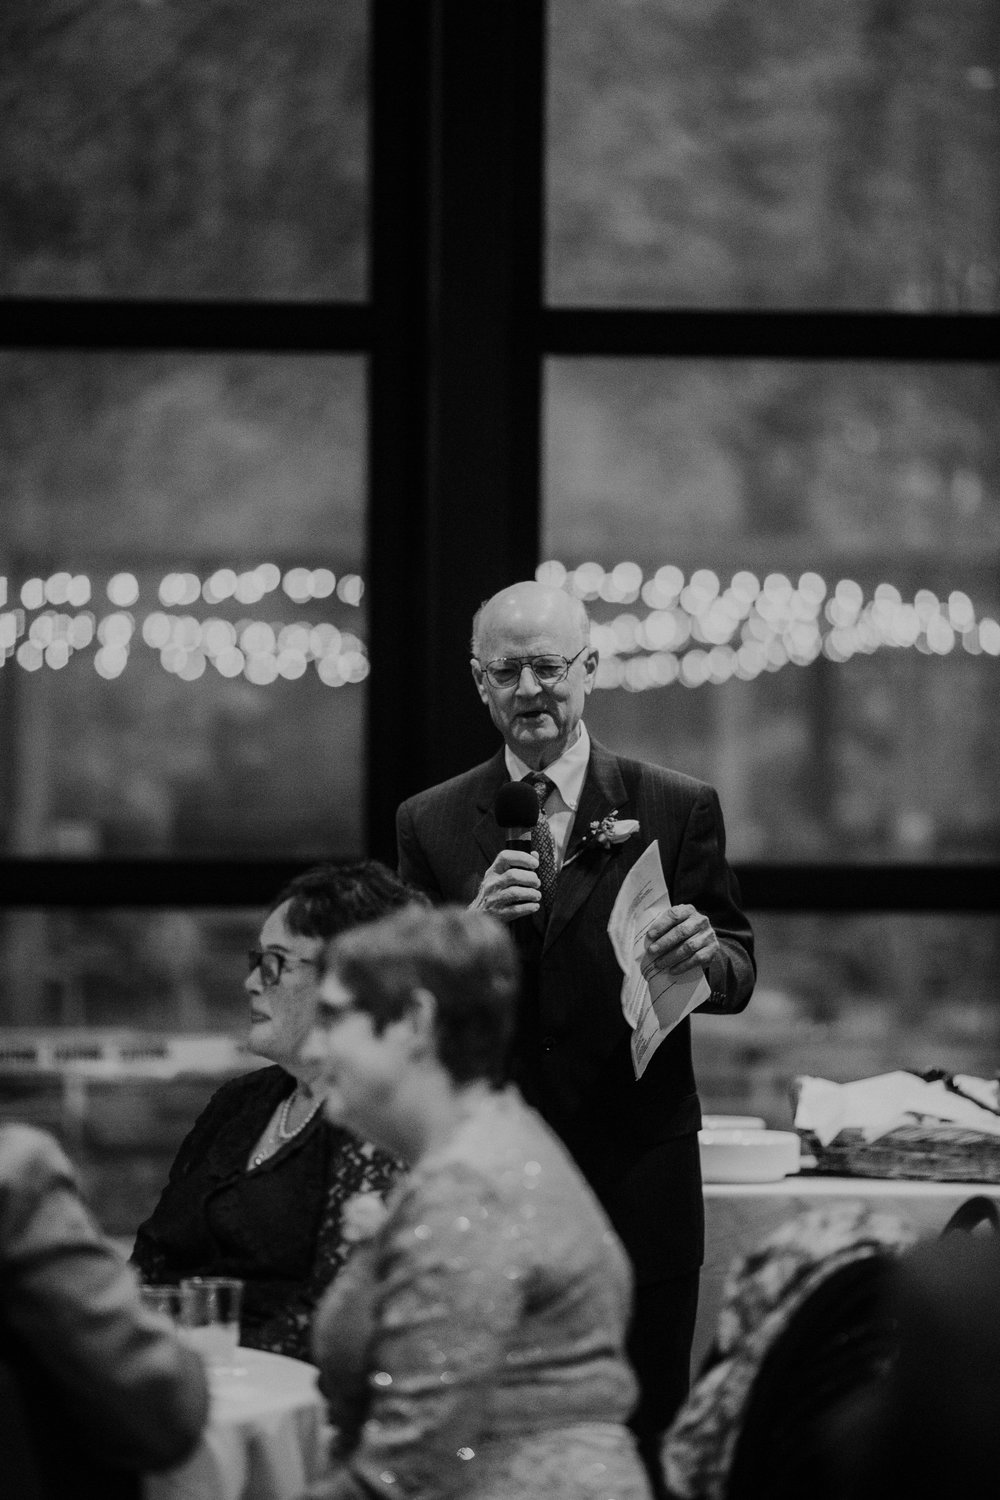 Columbus ohio wedding photographer grace e jones photography real fun joyful wedding118.jpg